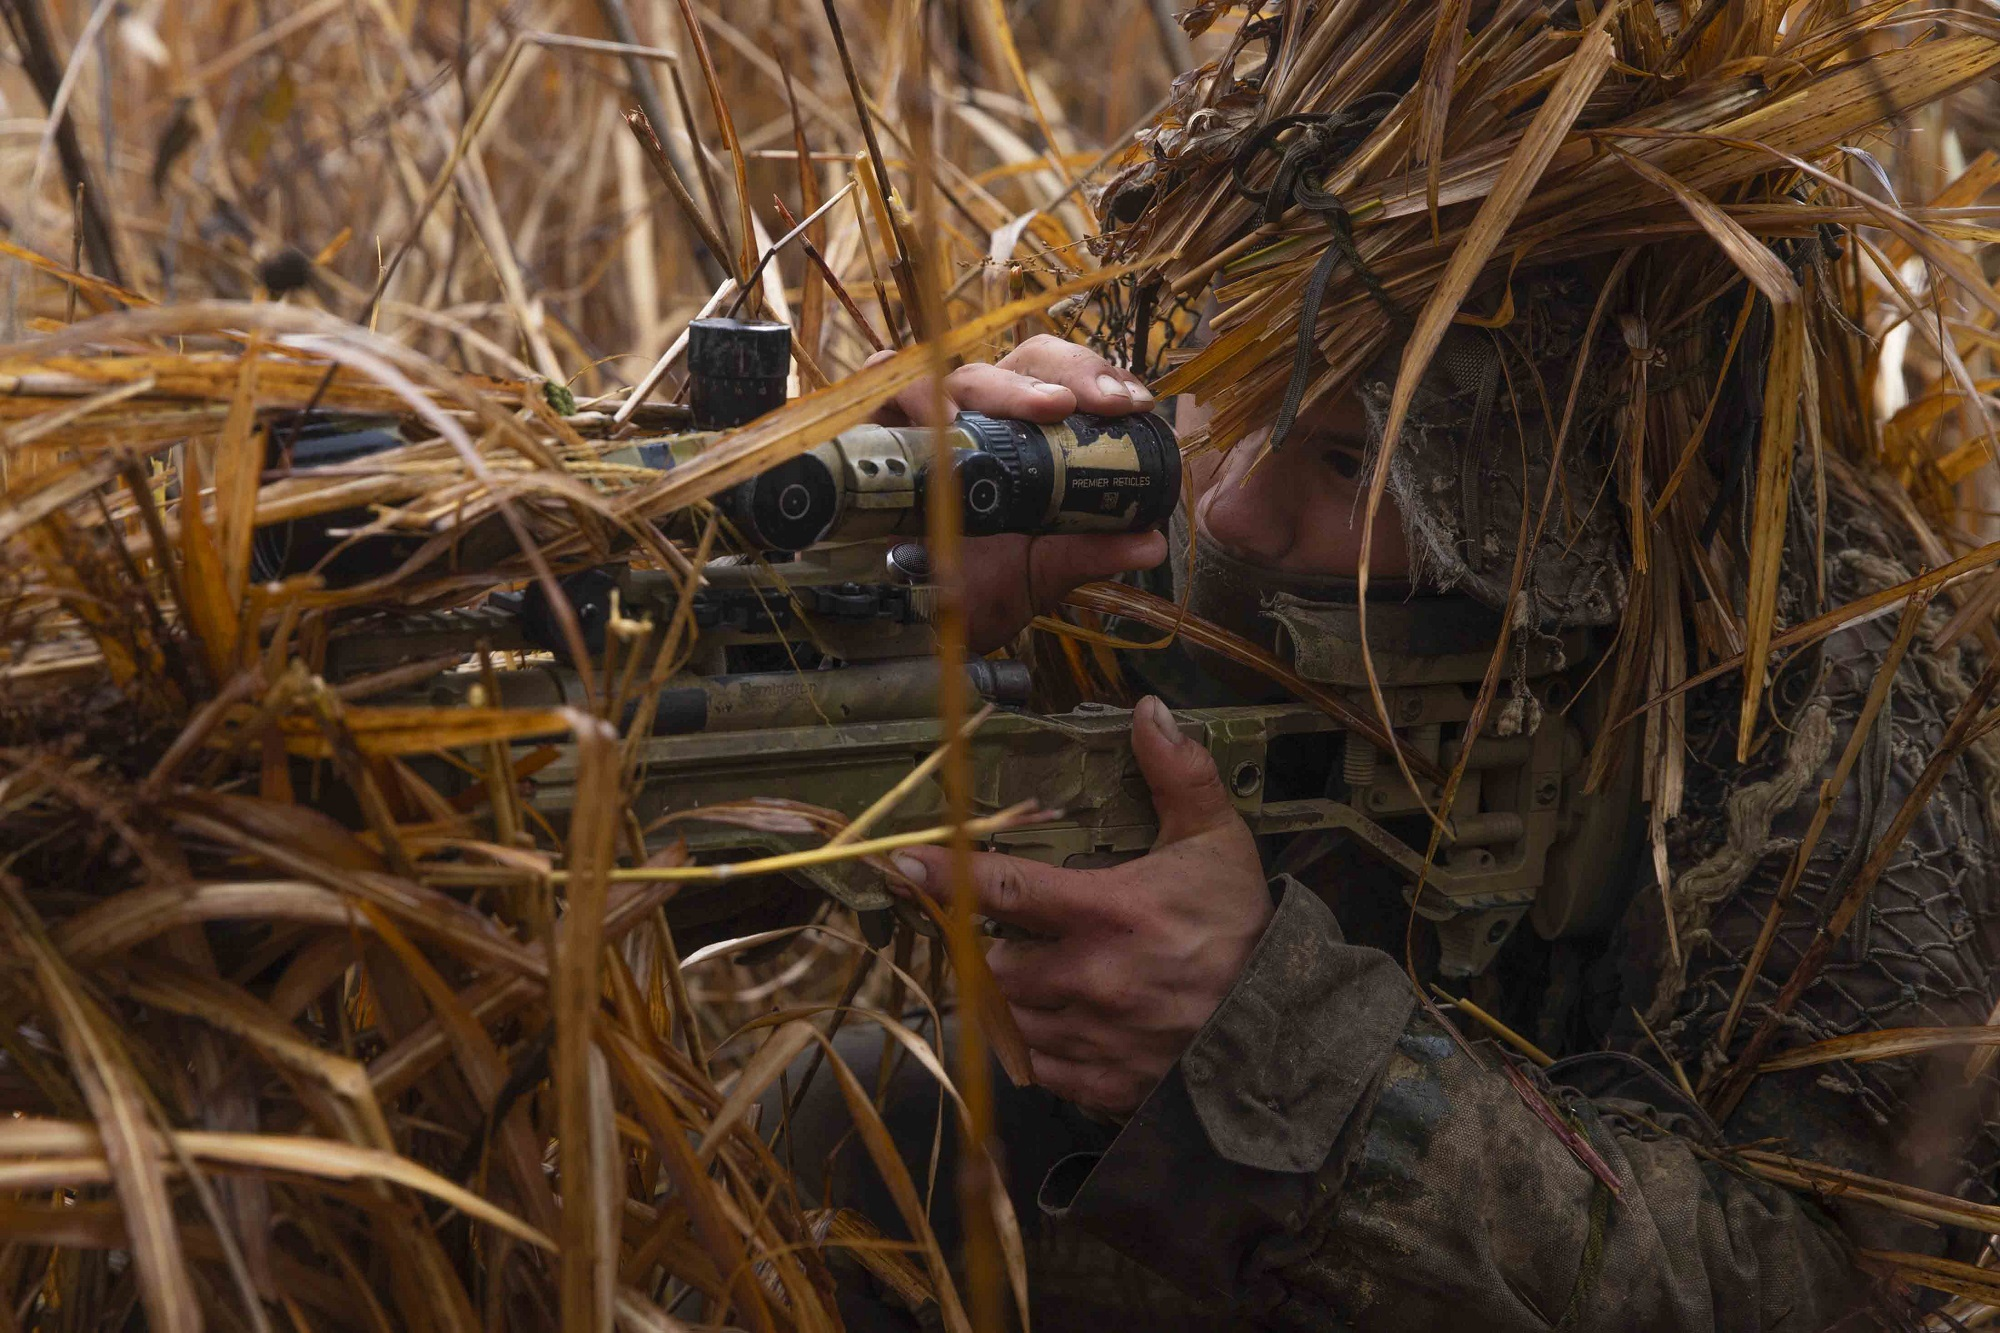 Marine Corps Cpl. Janus Zsofka participates in live-fire training in Niigata, Japan, Dec. 8, 2020, during Forest Light, an annual bilateral exercise with U.S. and Japanese forces. (Lance Cpl. Scott Aubuchon/Marine Corps)